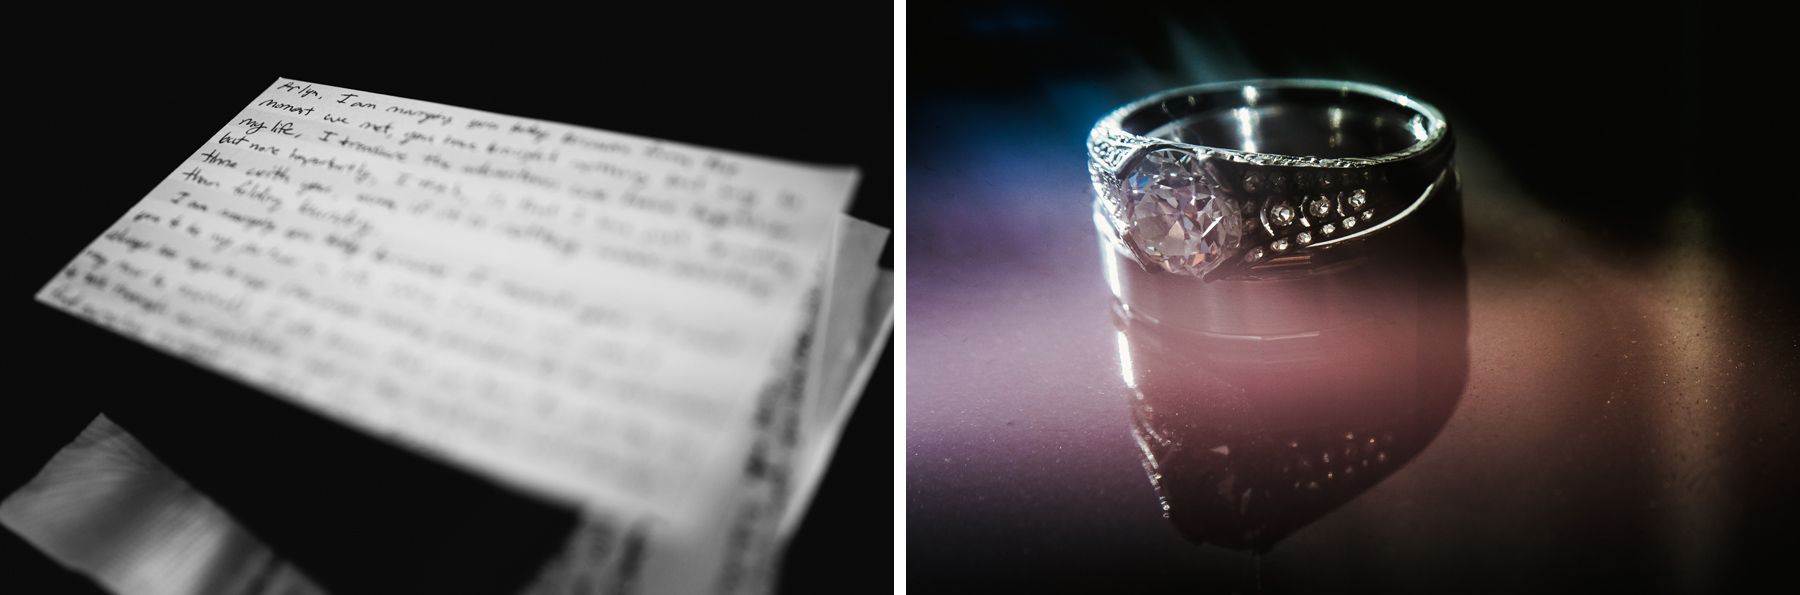 creative wedding rings shot